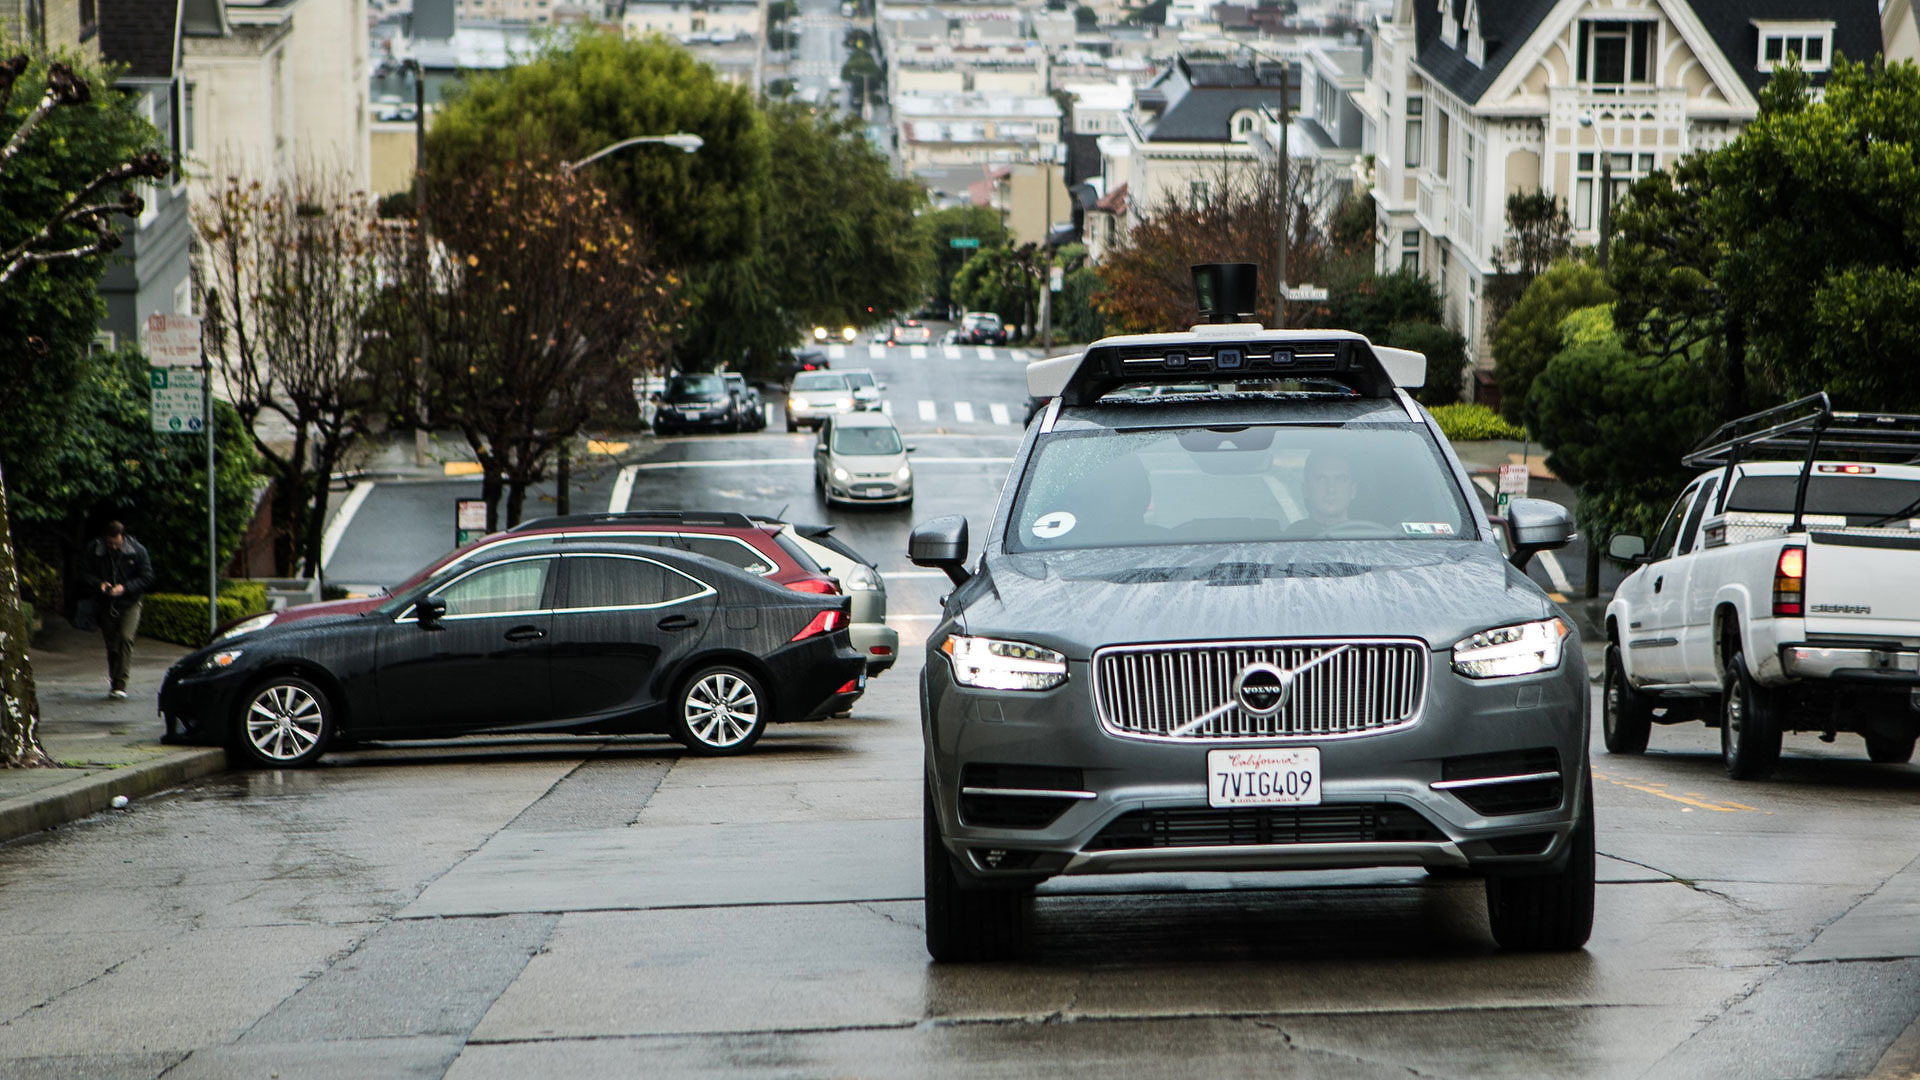 Volvo Of Tempe >> All Uber Self Driving Cars Back On Duty After Crash In Tempe